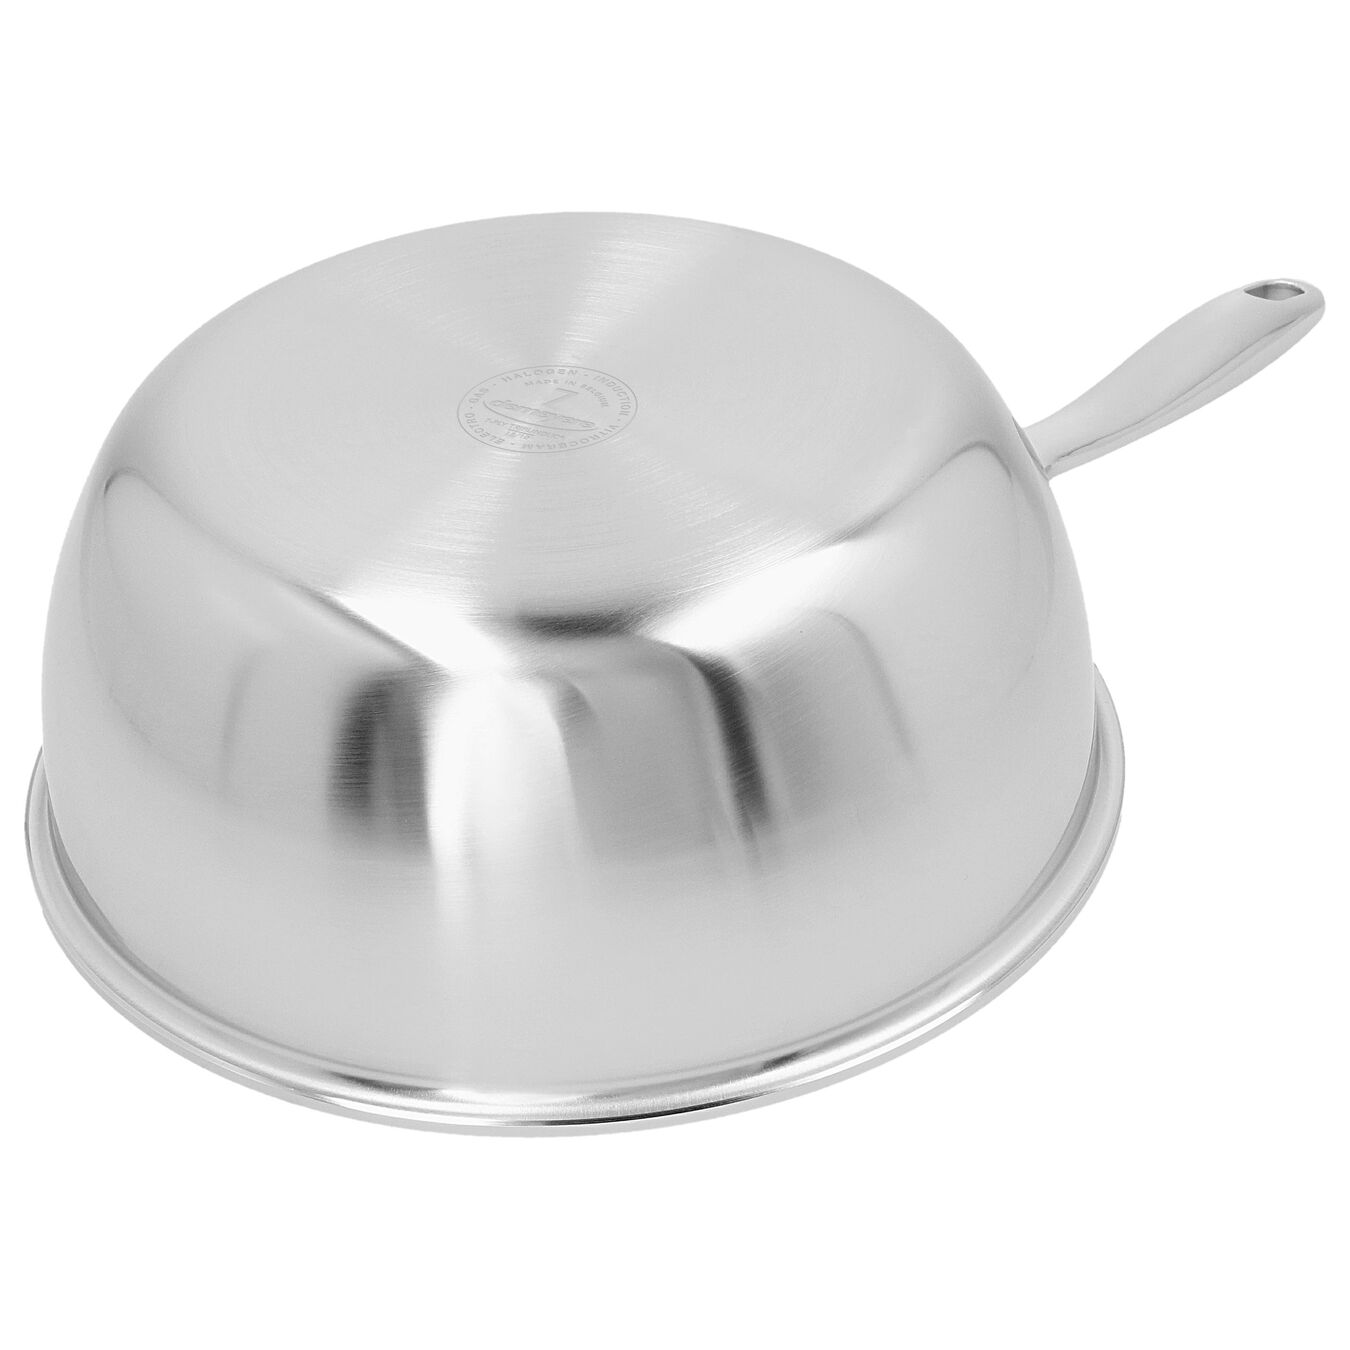 60-oz Sauteuse conical, 18/10 Stainless Steel ,,large 4